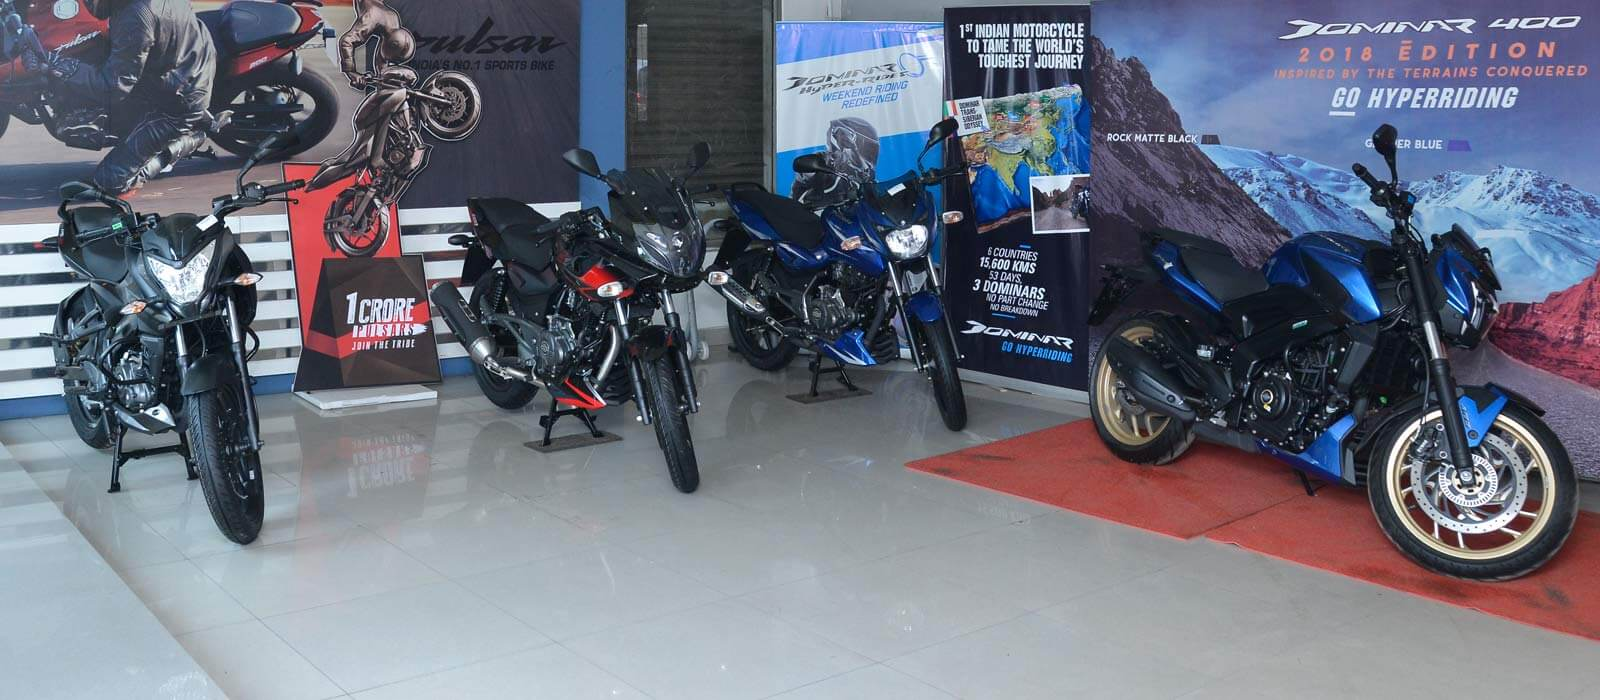 Bajaj Showroom in Annasalai